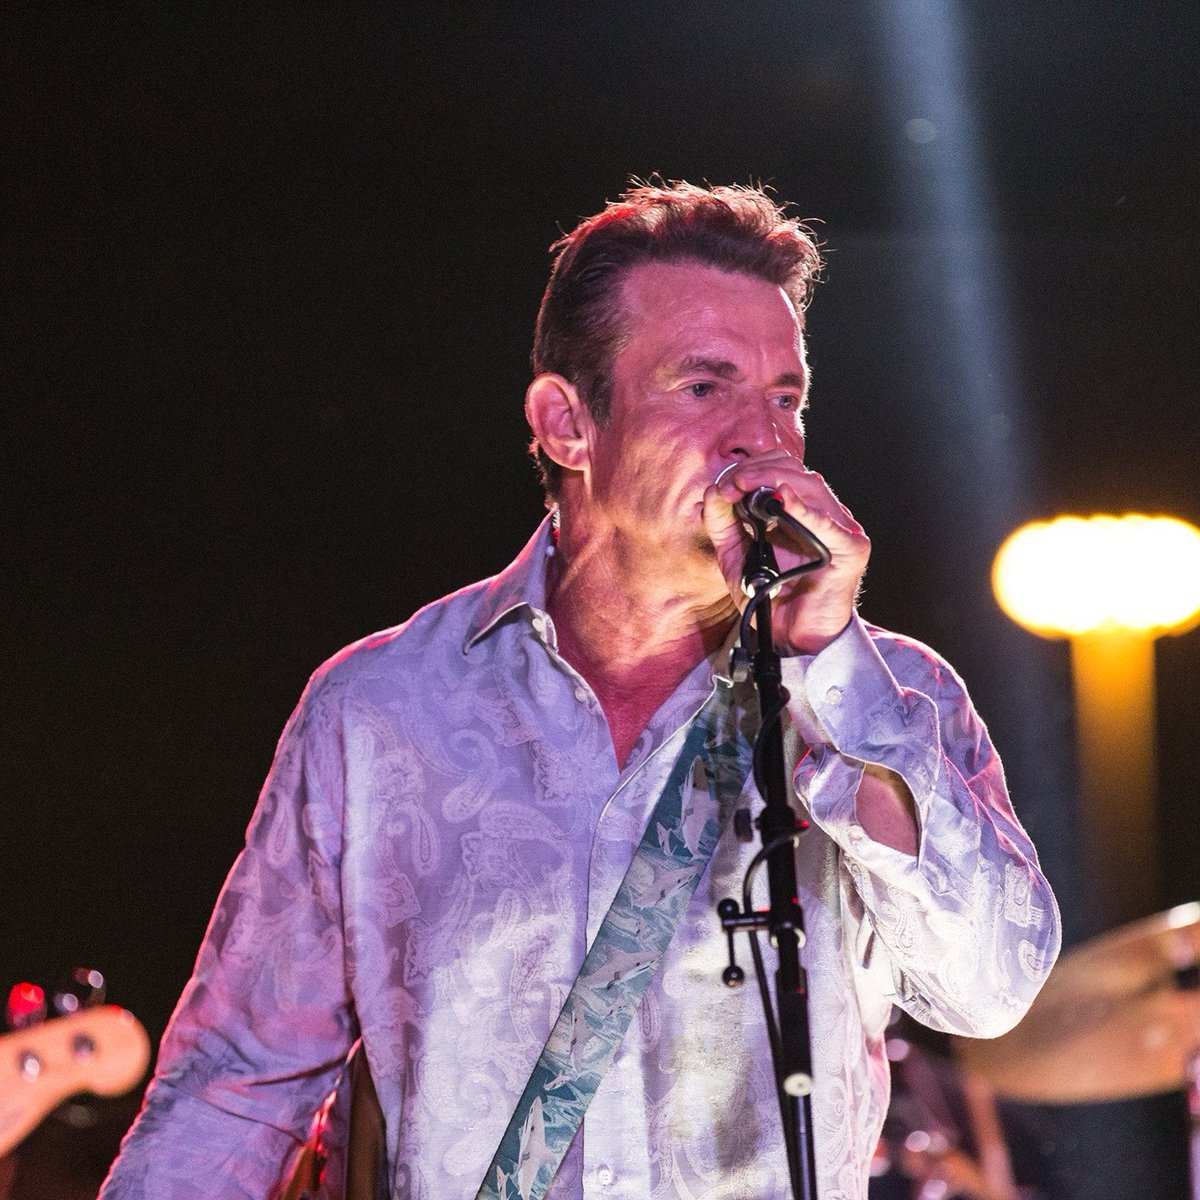 Local festivals and concert series highlight #WicksPicks Lexington live menu for July 8-14, led by Dennis Quaid and the Sharks, @TheBajaYetis, @LissyTaylor17 and @banditosband bigbluetunes.com/2018/07/07/180…